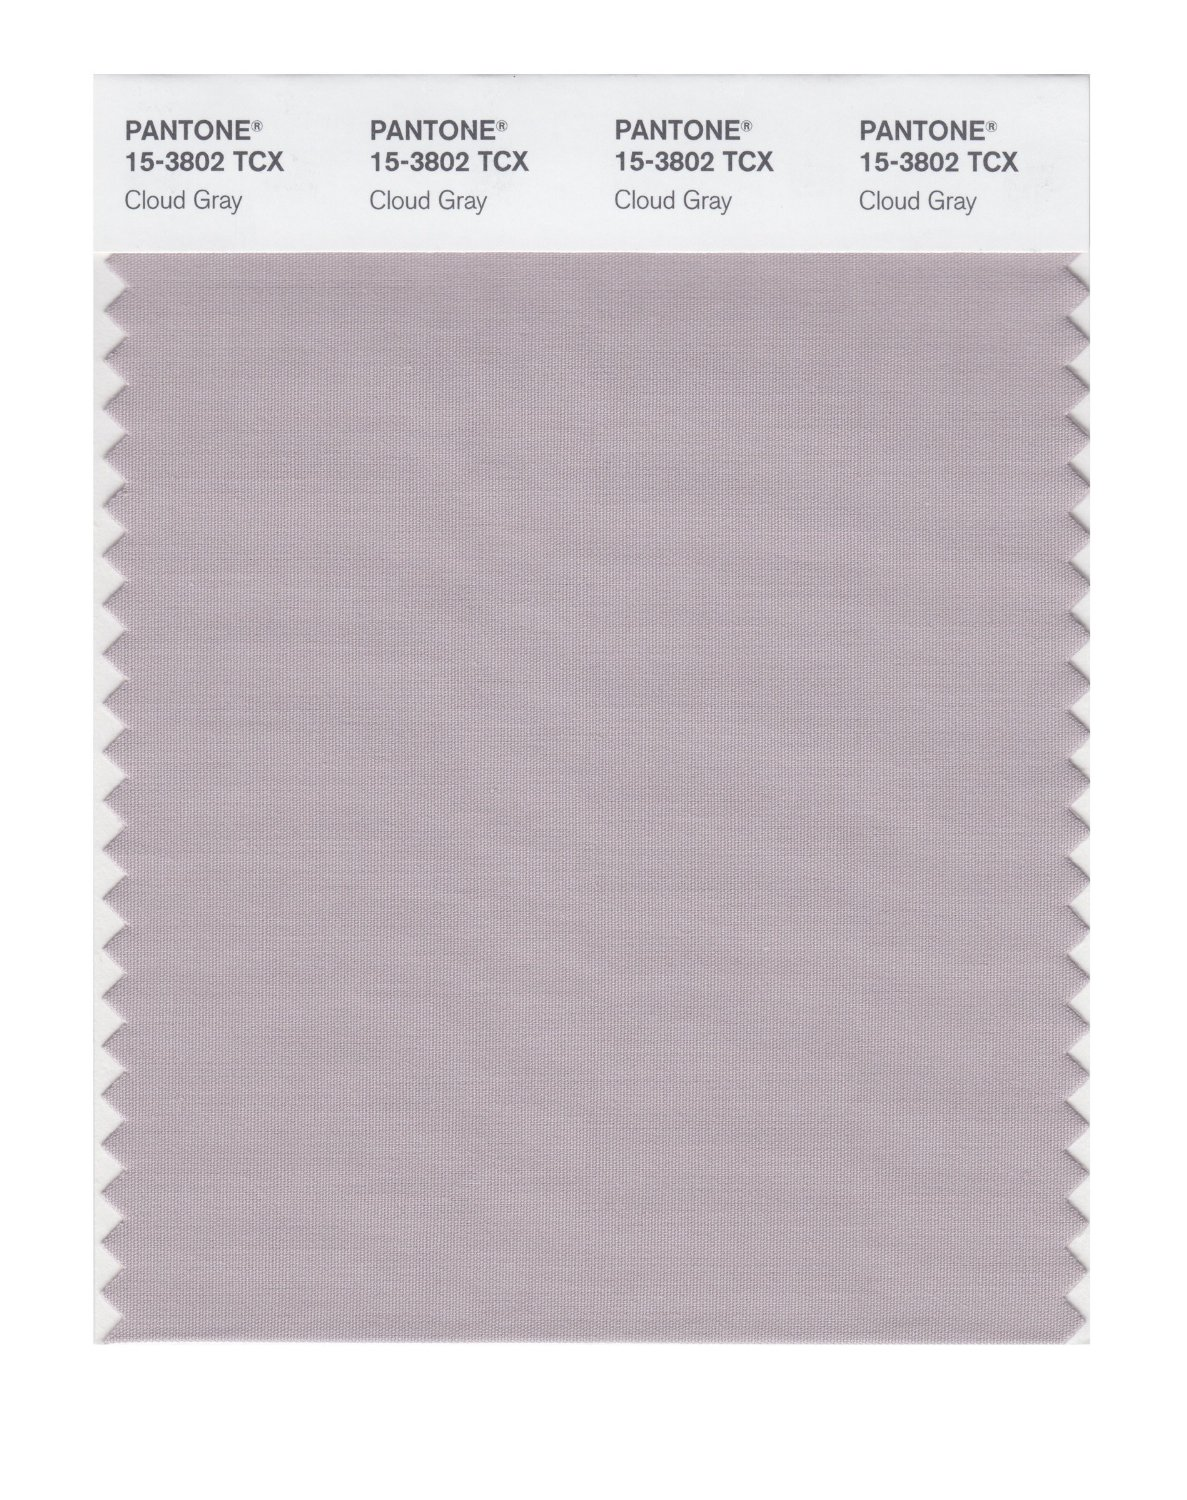 Pantone Smart Swatch 15-3802 Cloud Gray